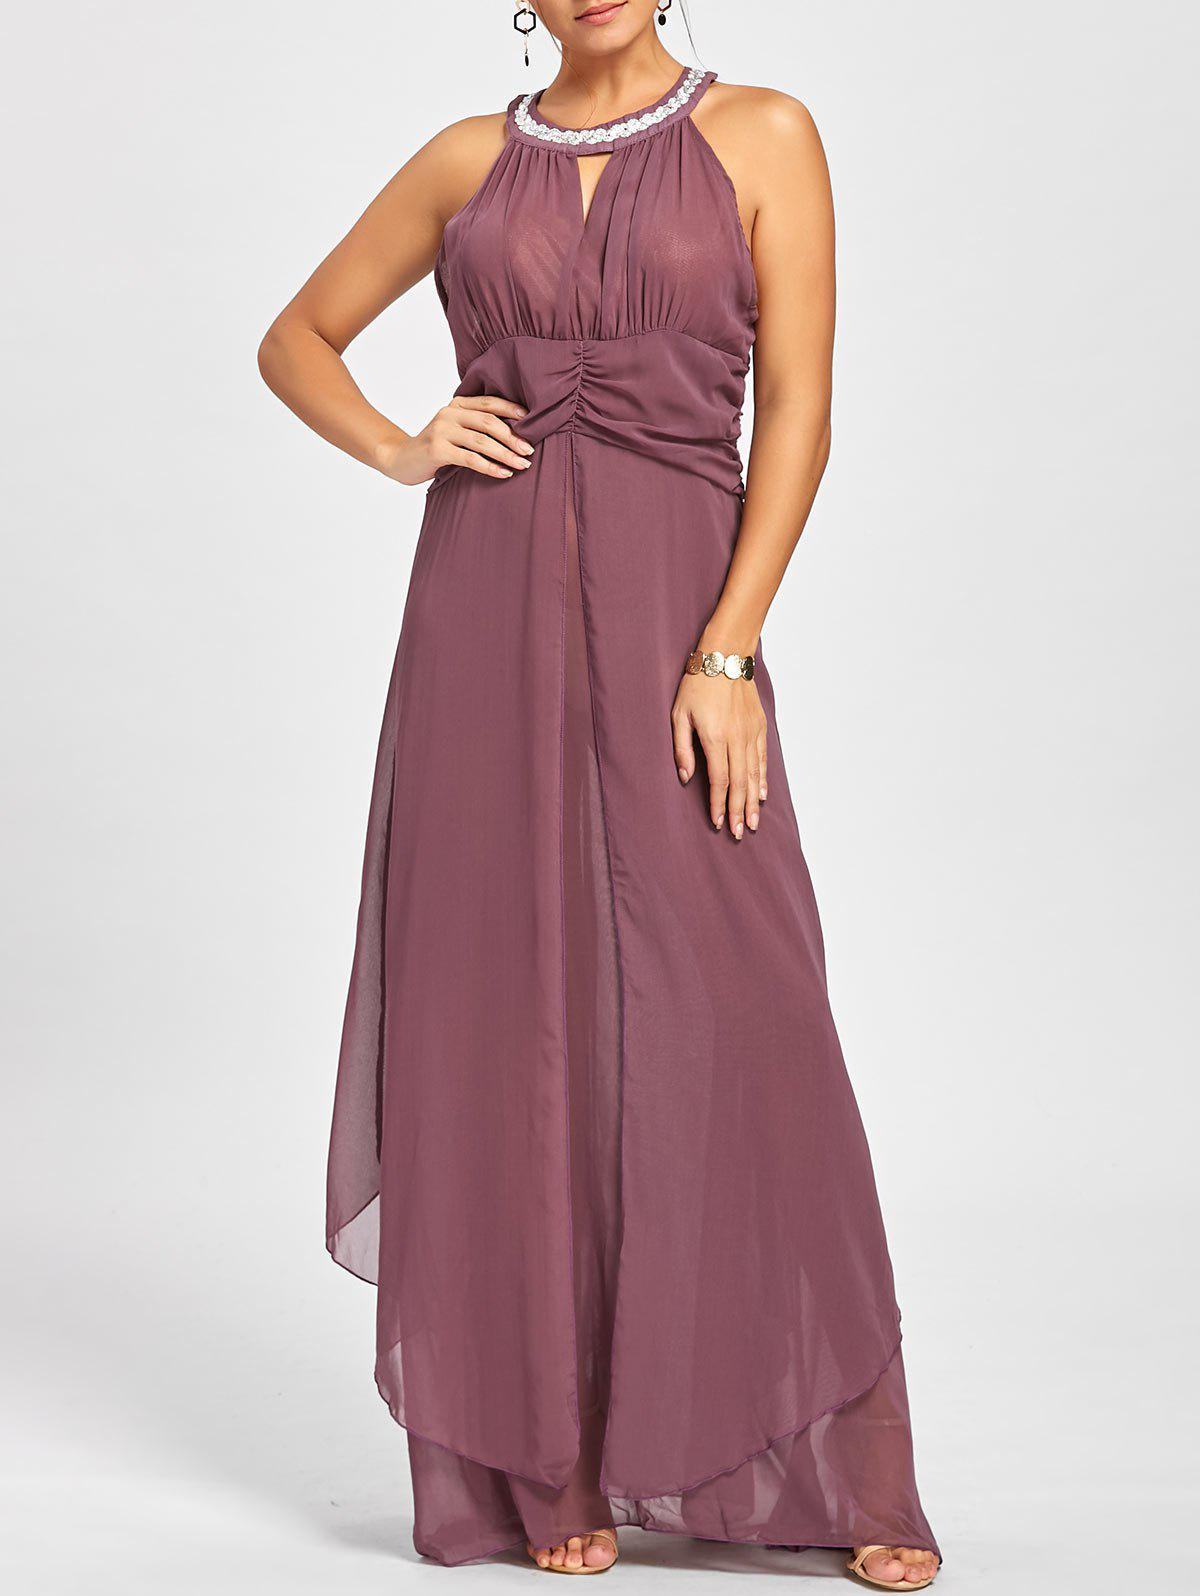 2cf5deda0aaf 89% OFF] Empire Waist Sleeveless Flowy Cocktail Dress | Rosegal